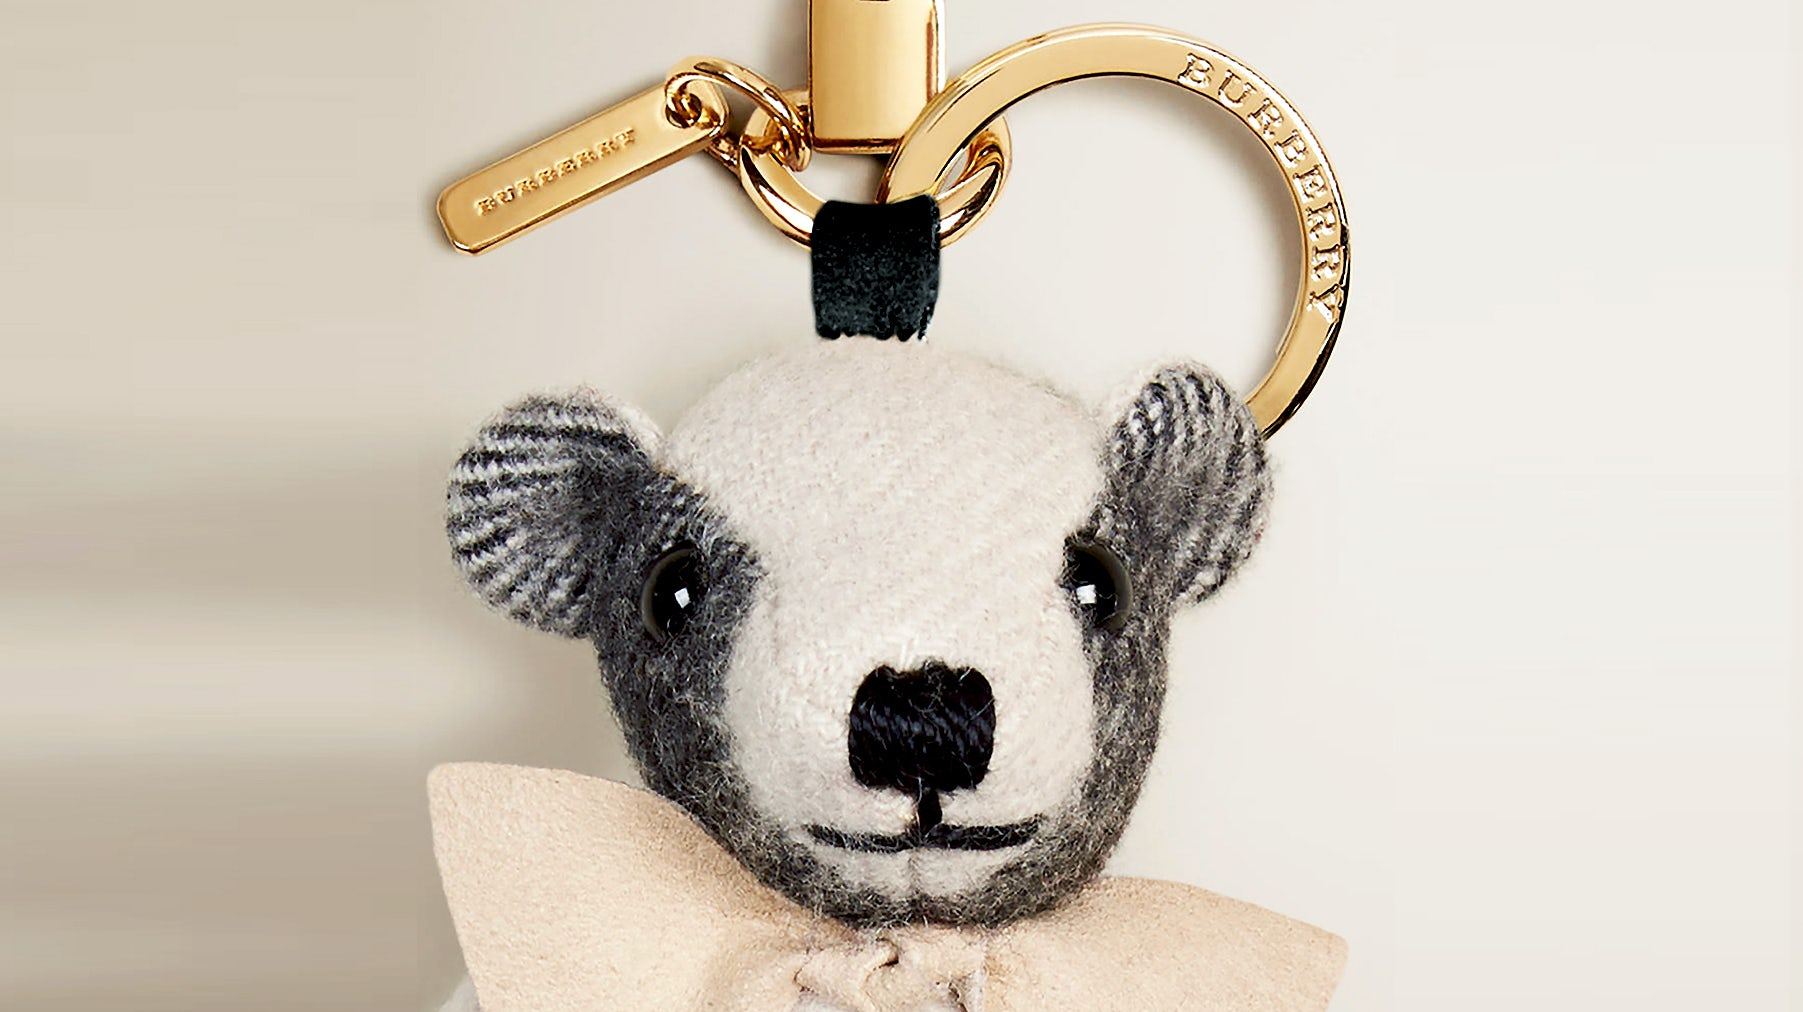 Burberry bear key chain | Source: Burberry